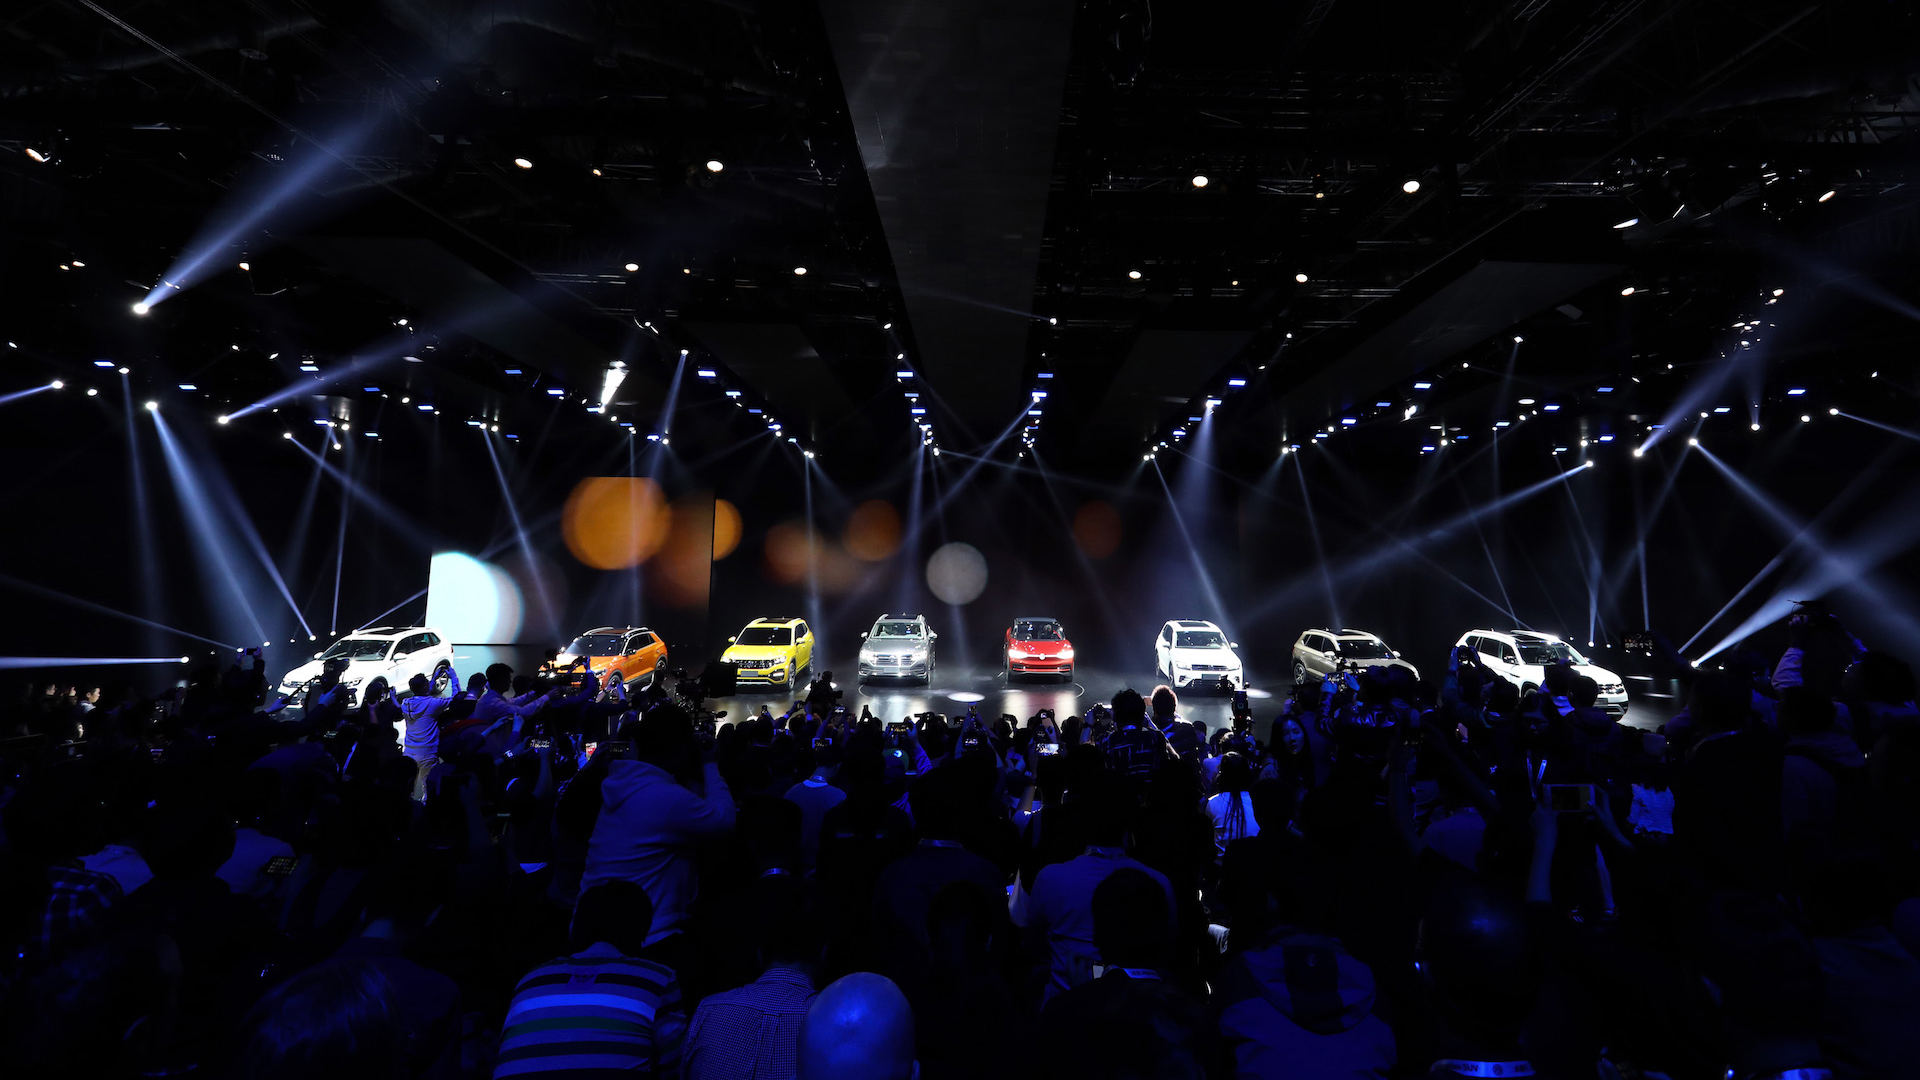 The eight new Volkswagen SUV models stand in front of a black stage and are illuminated.